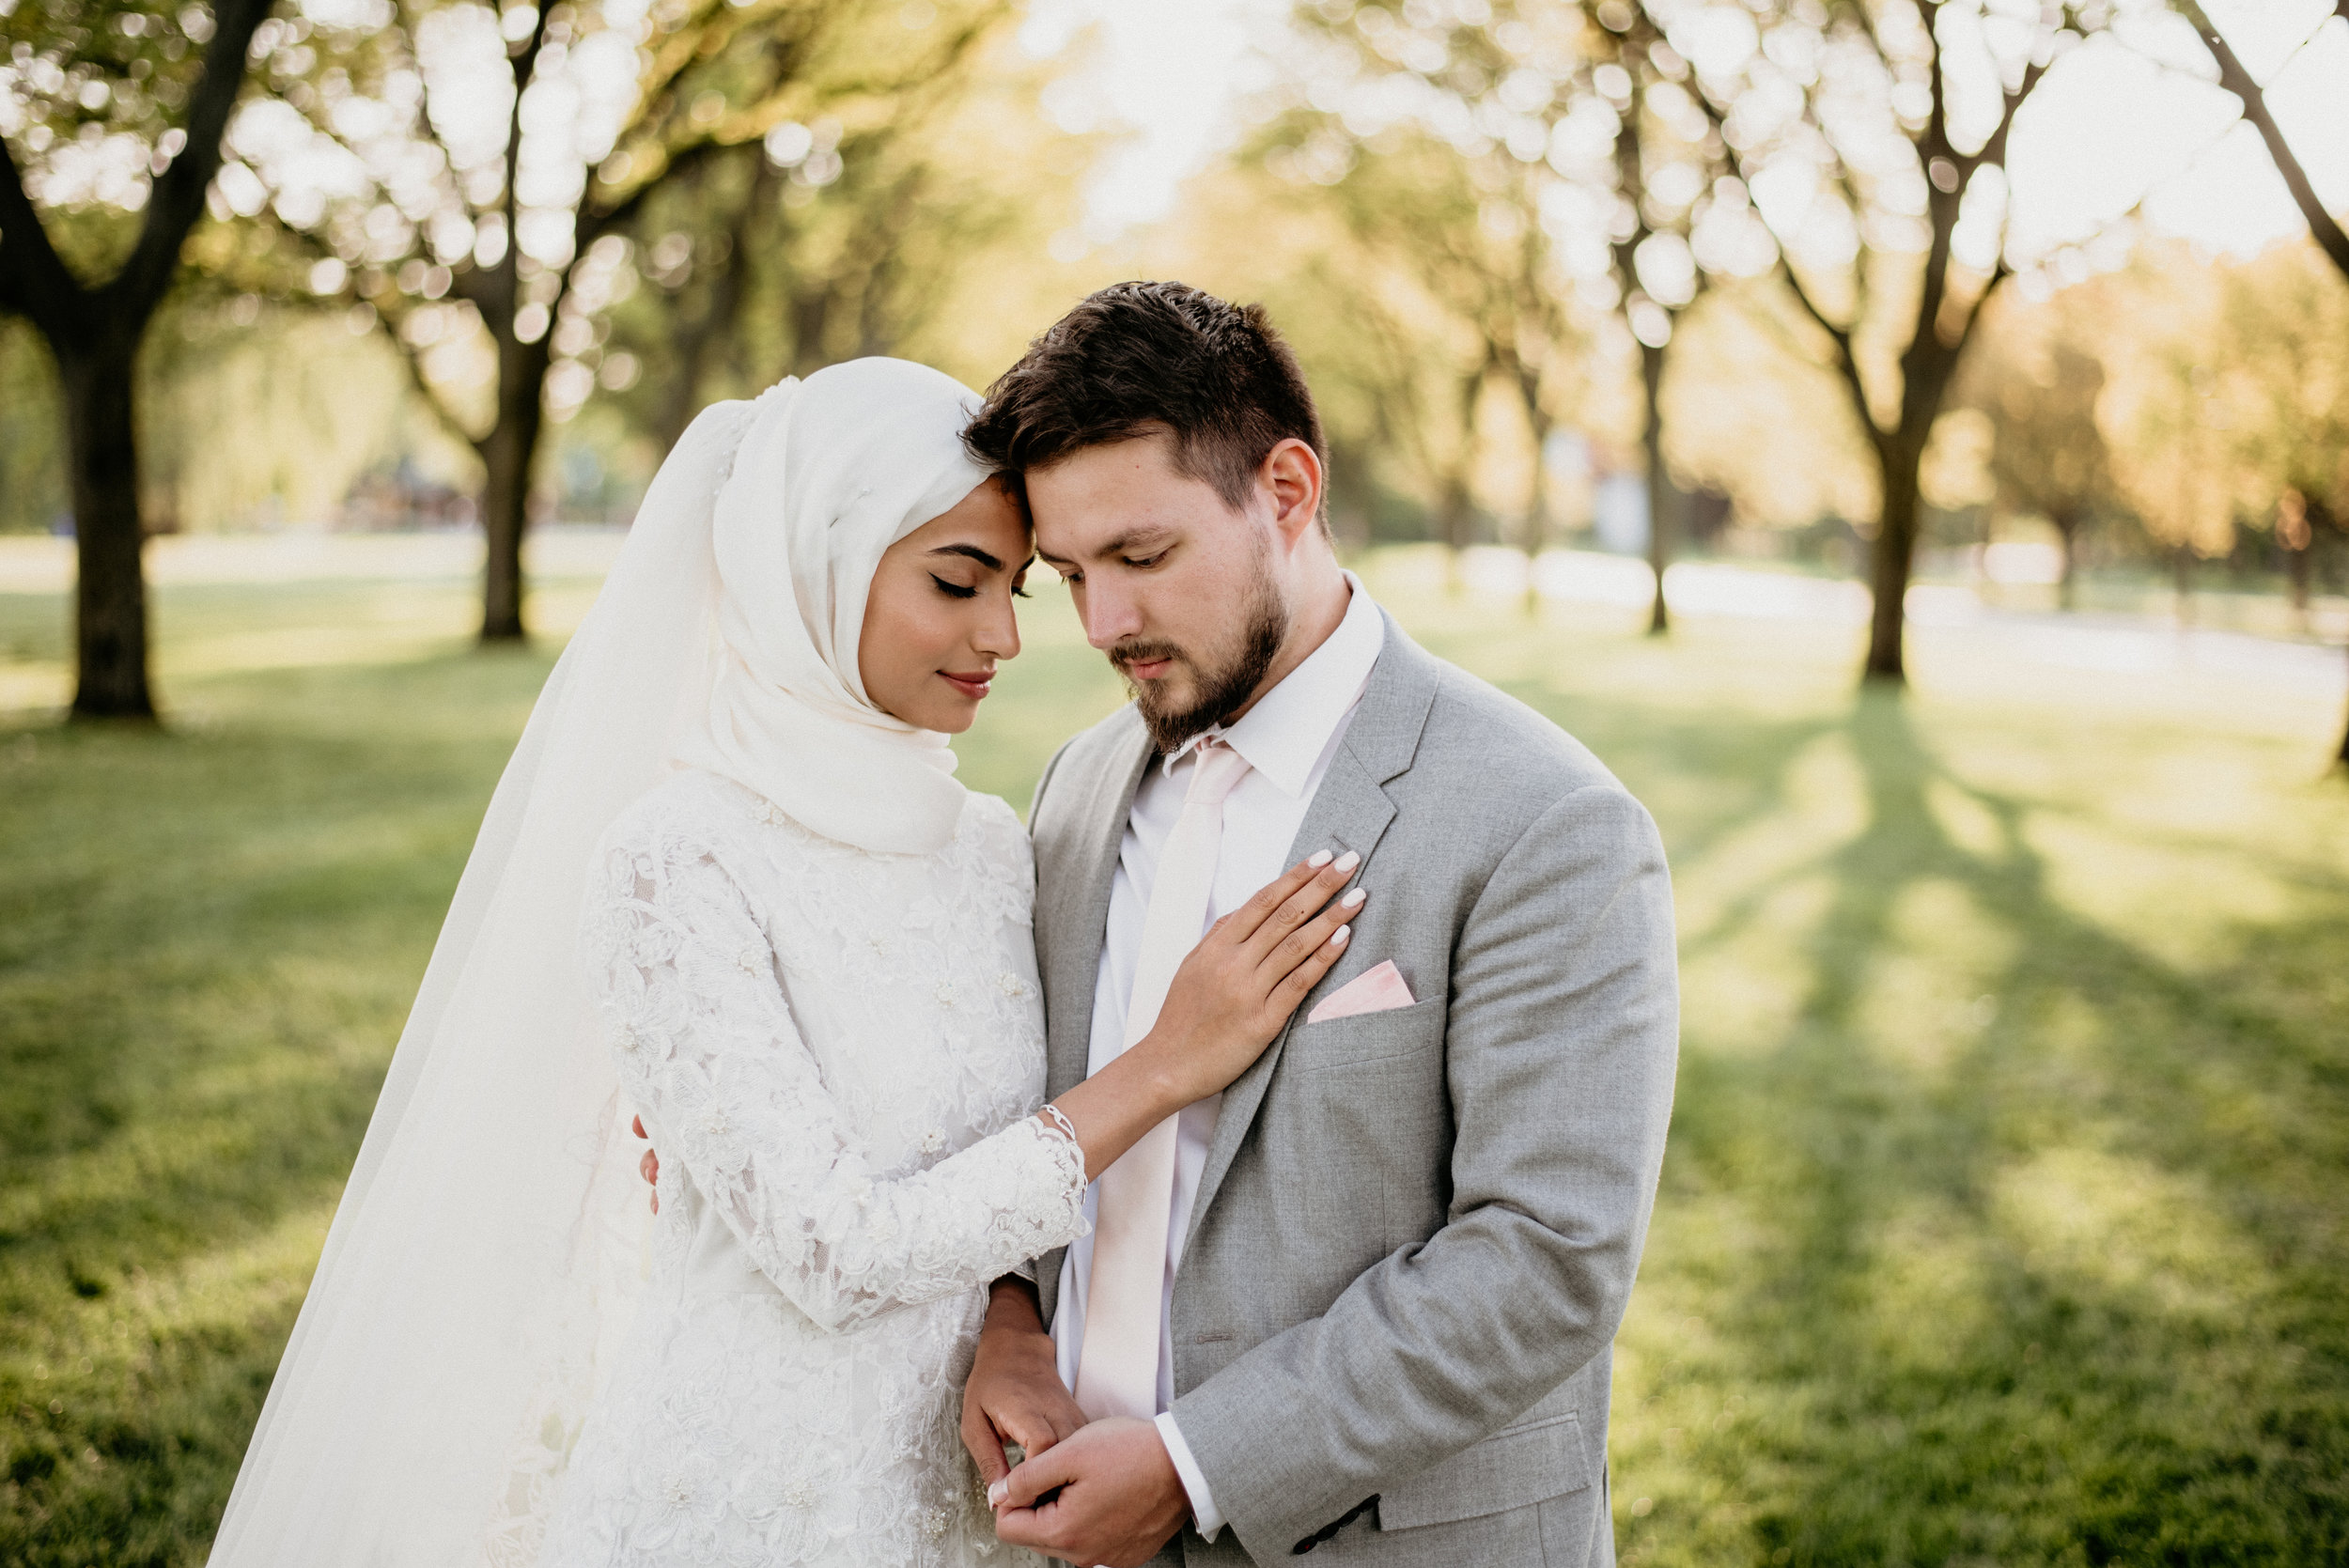 Bakir and Rabia - Muslim Wedding | Highland Park Community House | Highland Park, IL